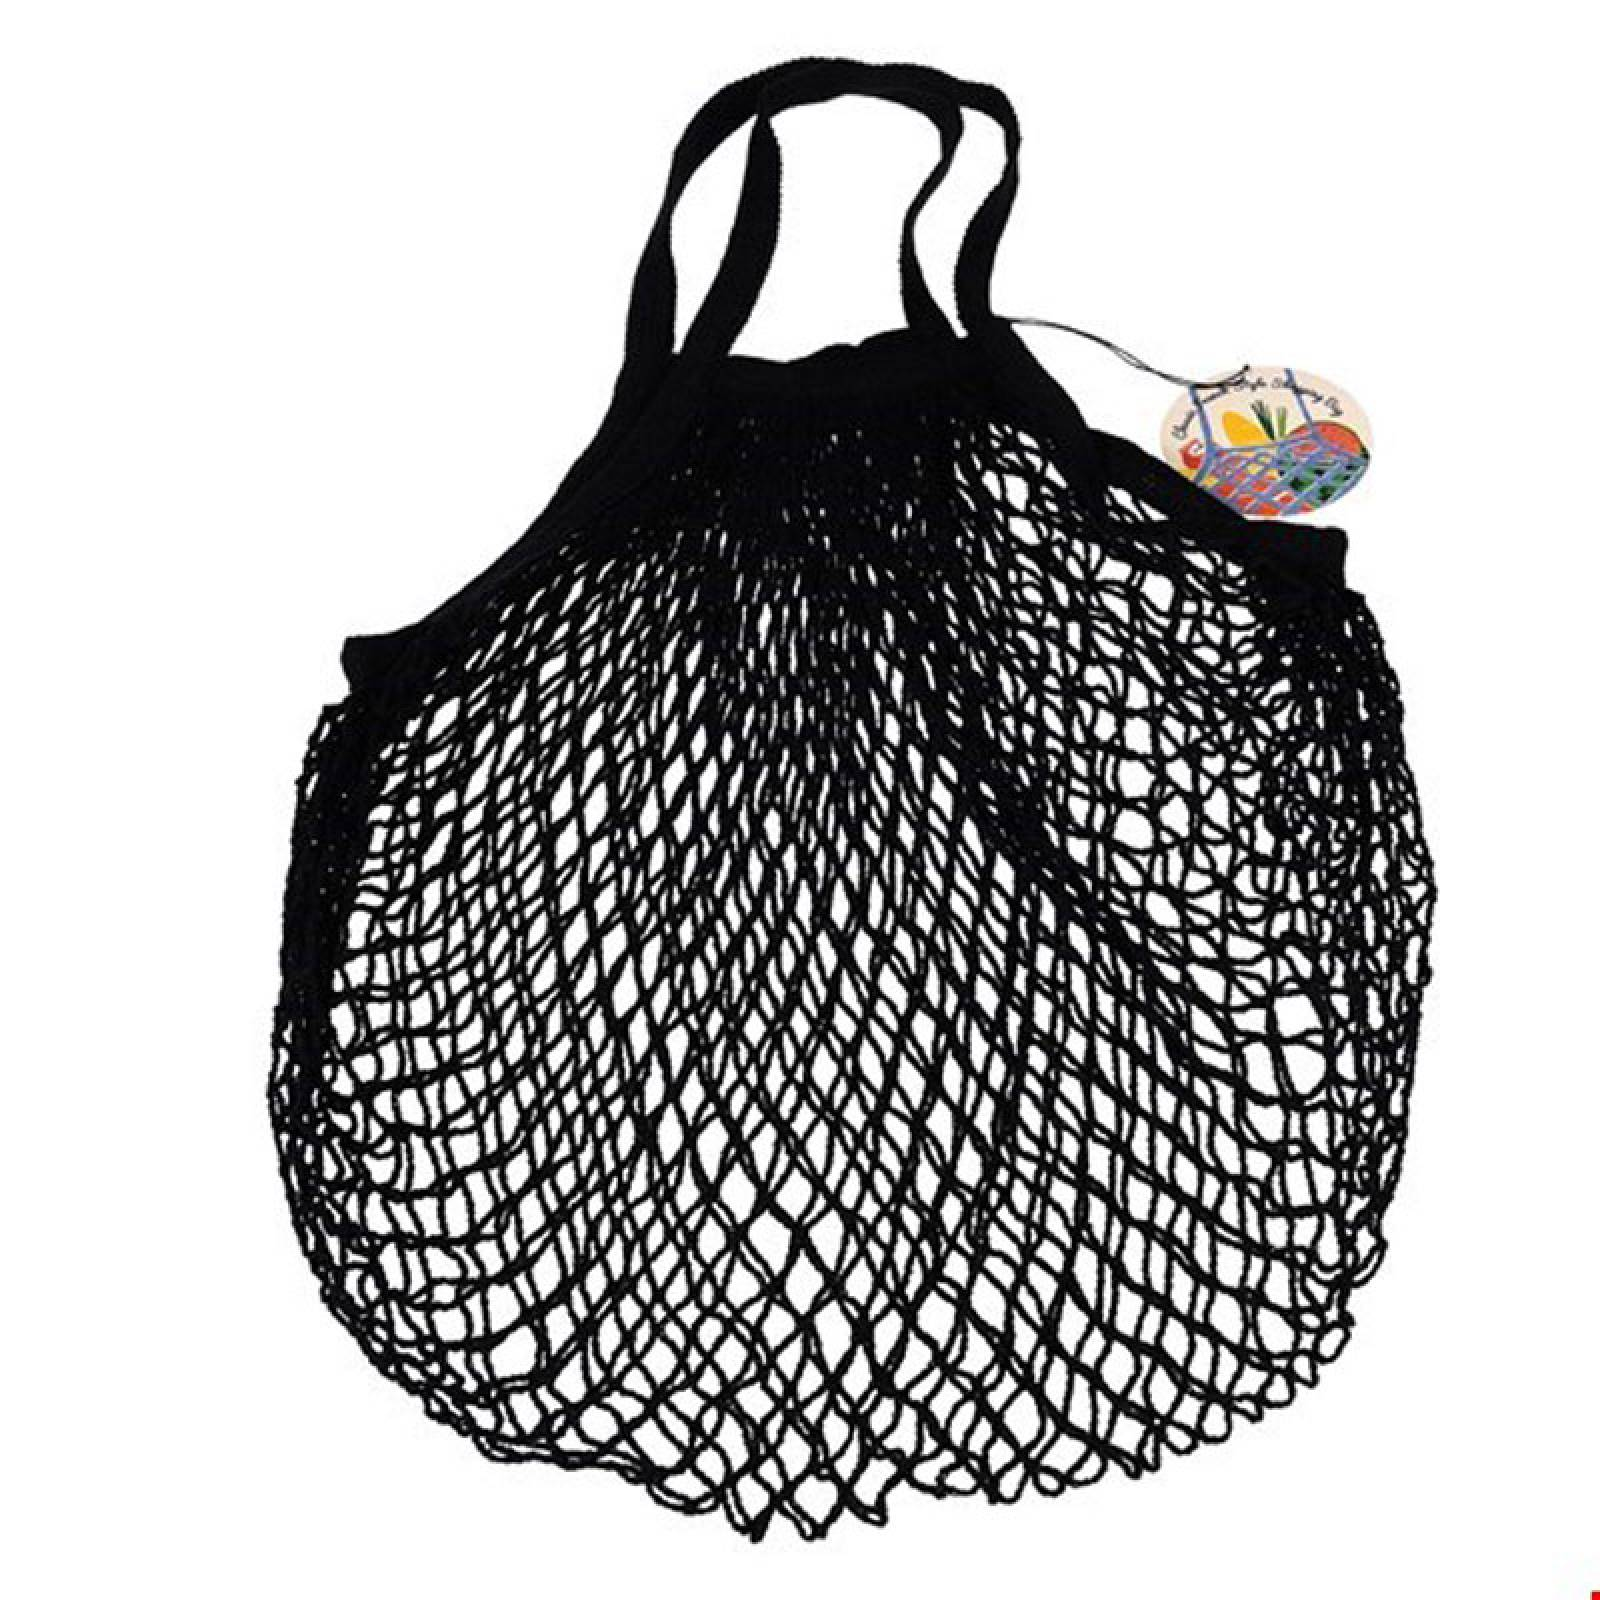 Black String Shopping Bag